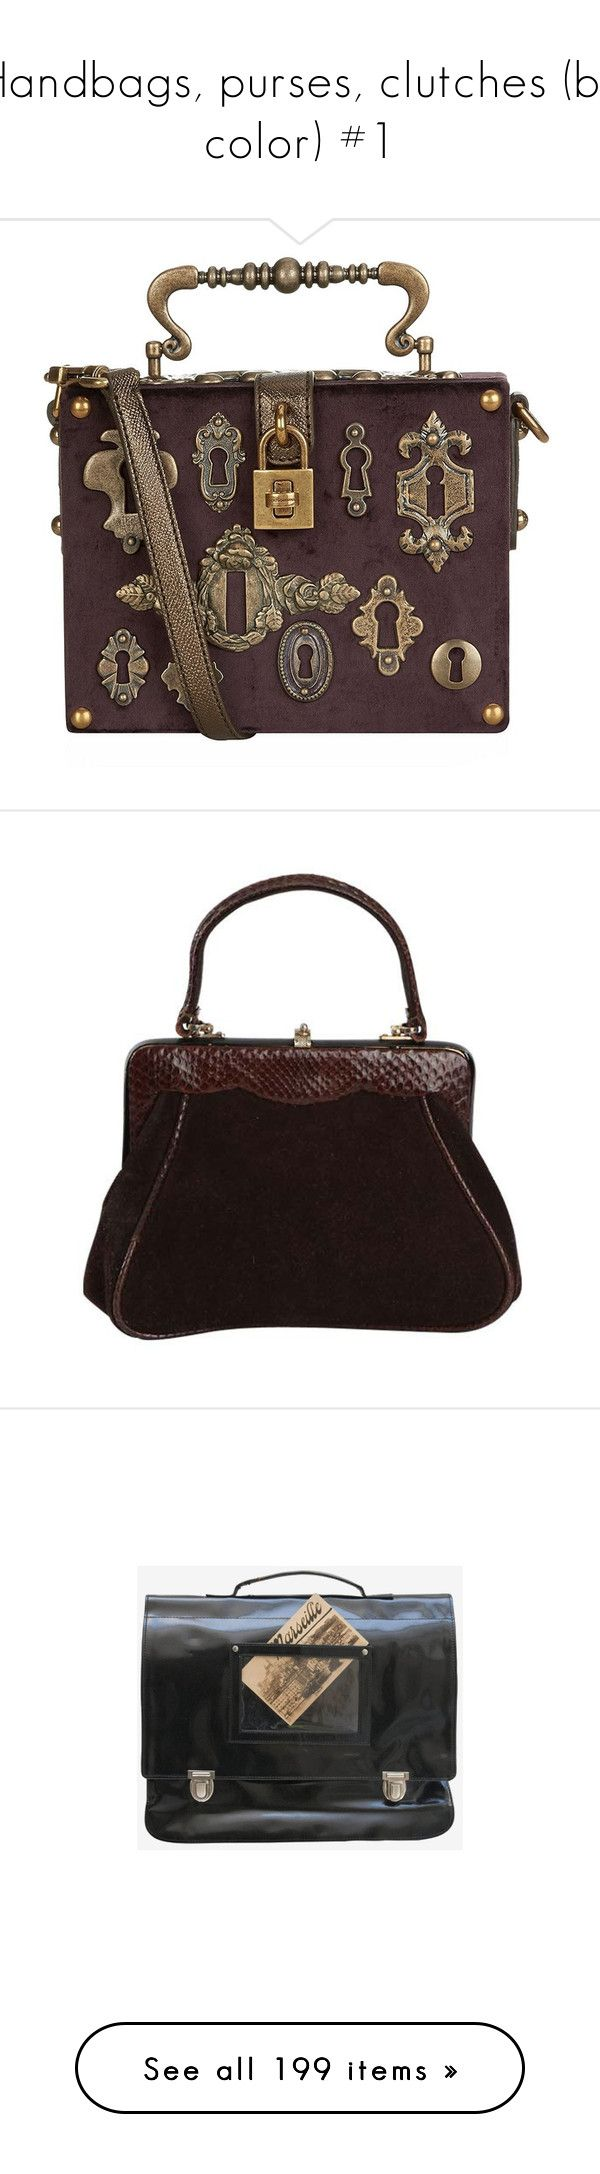 """""""Handbags, purses, clutches (by color) #1"""" by suzeetoo ❤ liked on Polyvore featuring gothic, steampunk, bags, handbags, purses, accessories, handbags purses, hand bags, evening hand bags and top handle purse"""